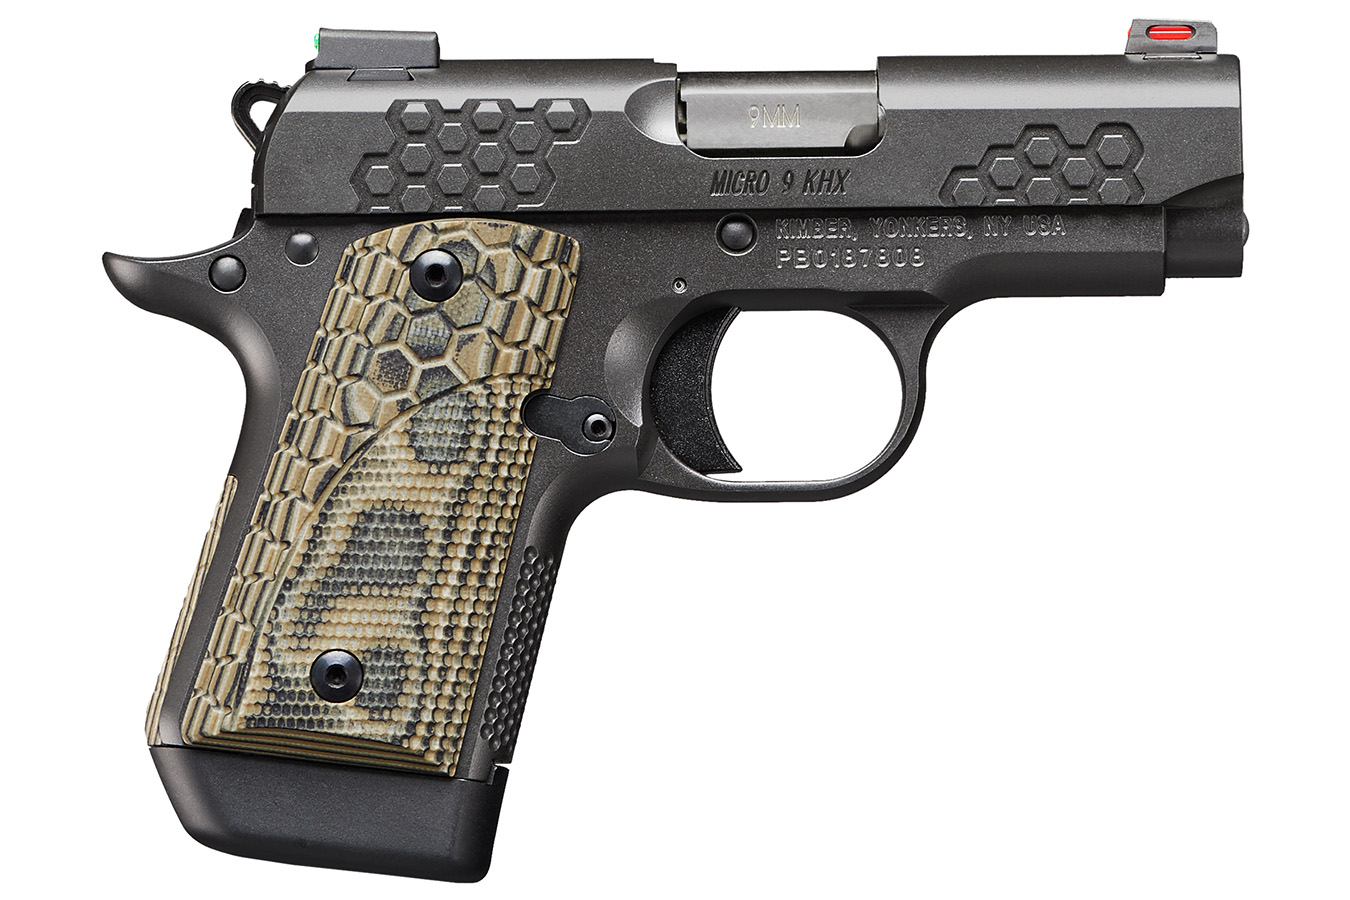 MICRO 9 KHX 9MM CARRY CONCEAL PISTOL